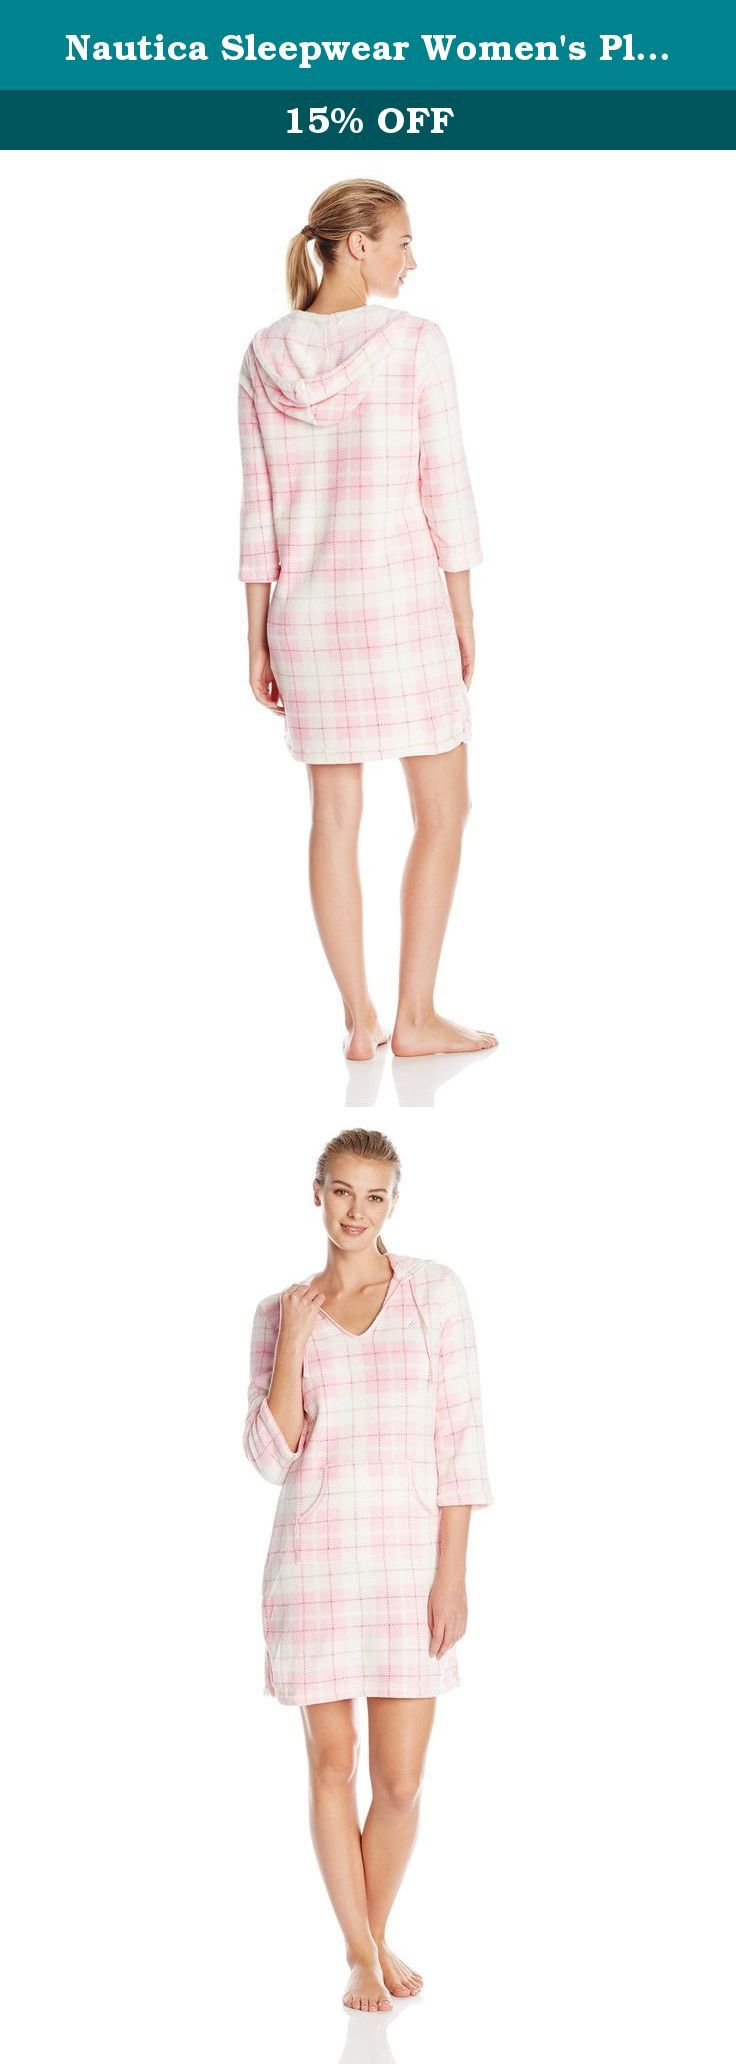 Nautica Sleepwear Women's Plush Plaid Hoodie Chemise, Orchid Pink, X-Large. Satin trim.